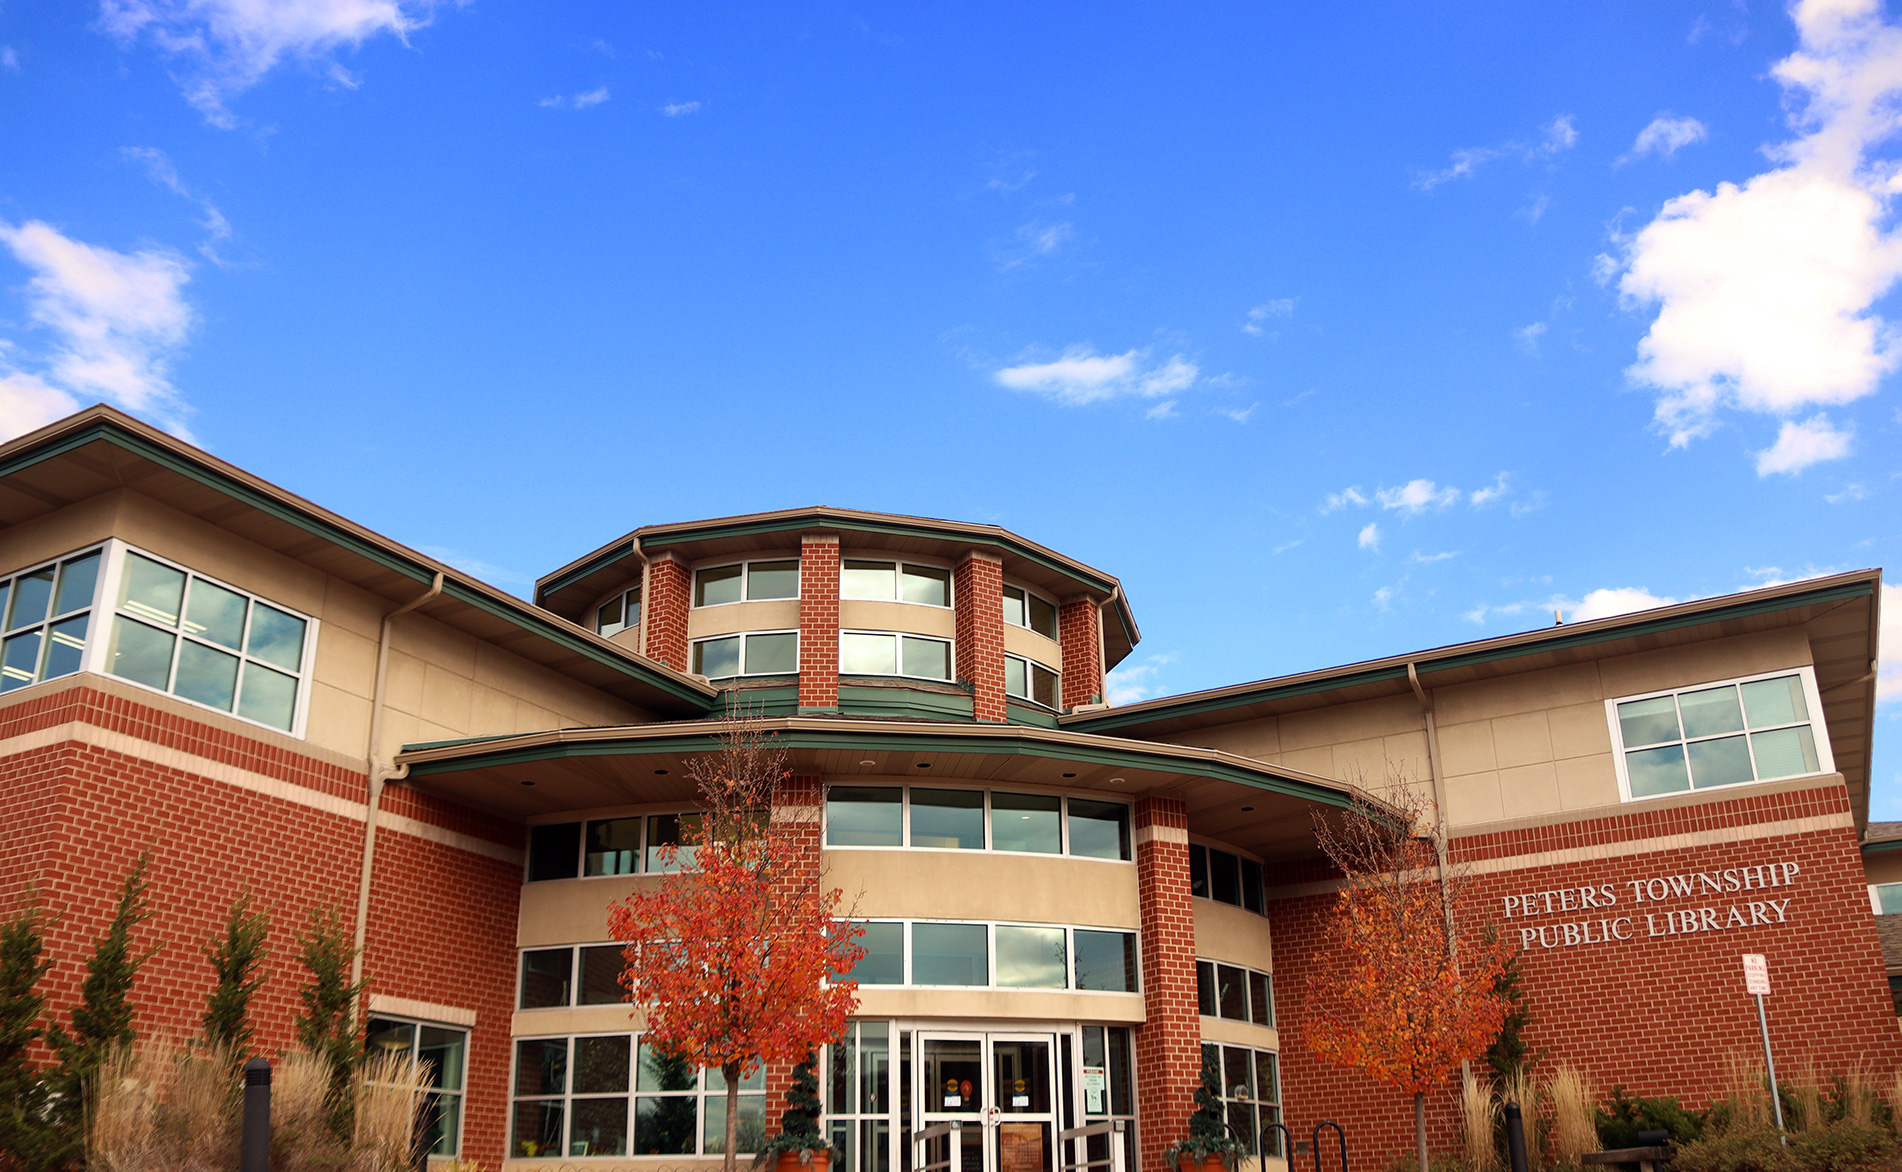 Peters Township Public Library